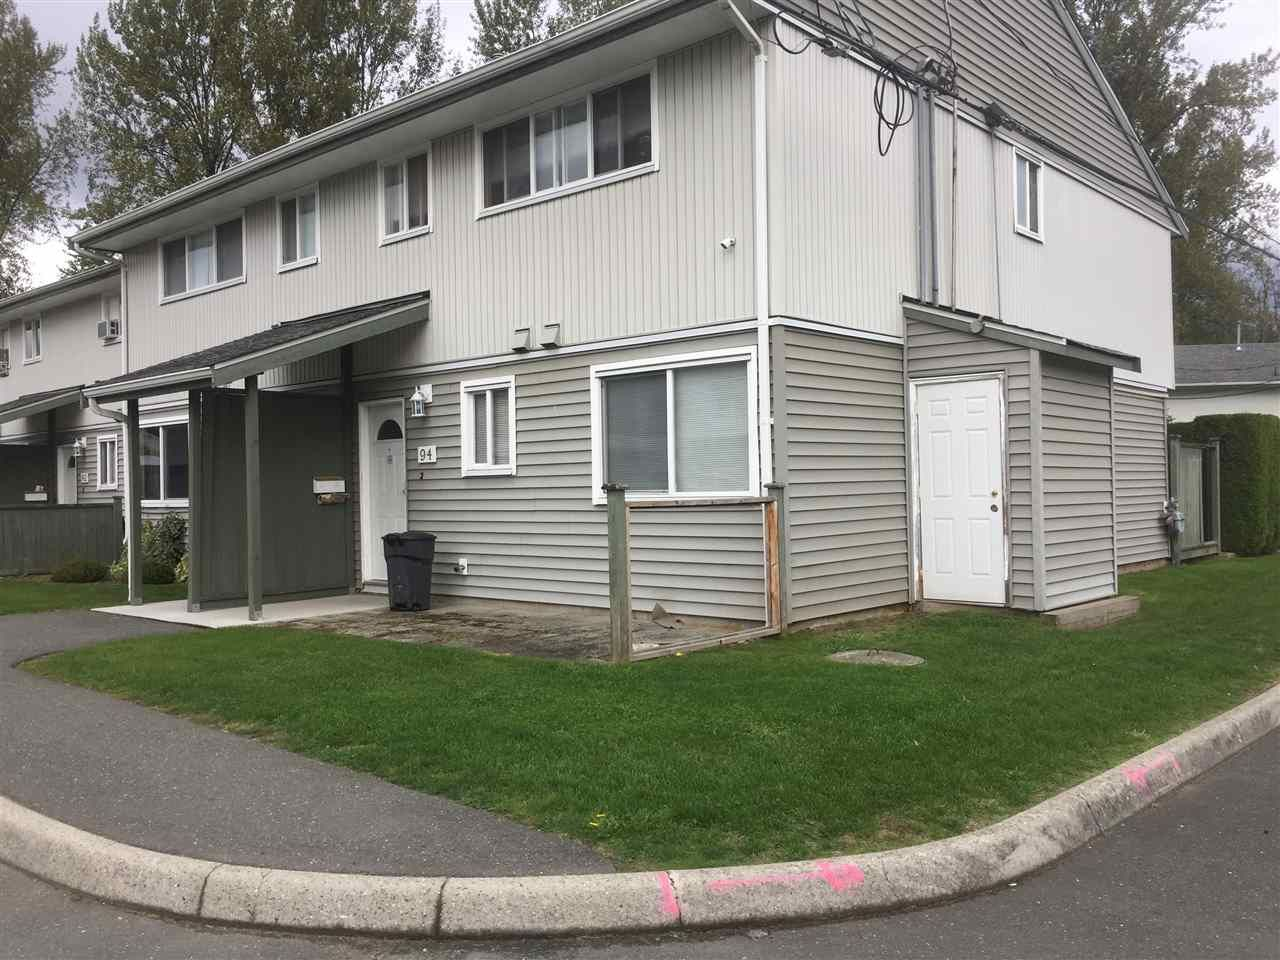 """Main Photo: 94 45185 WOLFE Road in Chilliwack: Chilliwack W Young-Well Townhouse for sale in """"TOWNSEND GREEN"""" : MLS®# R2507361"""